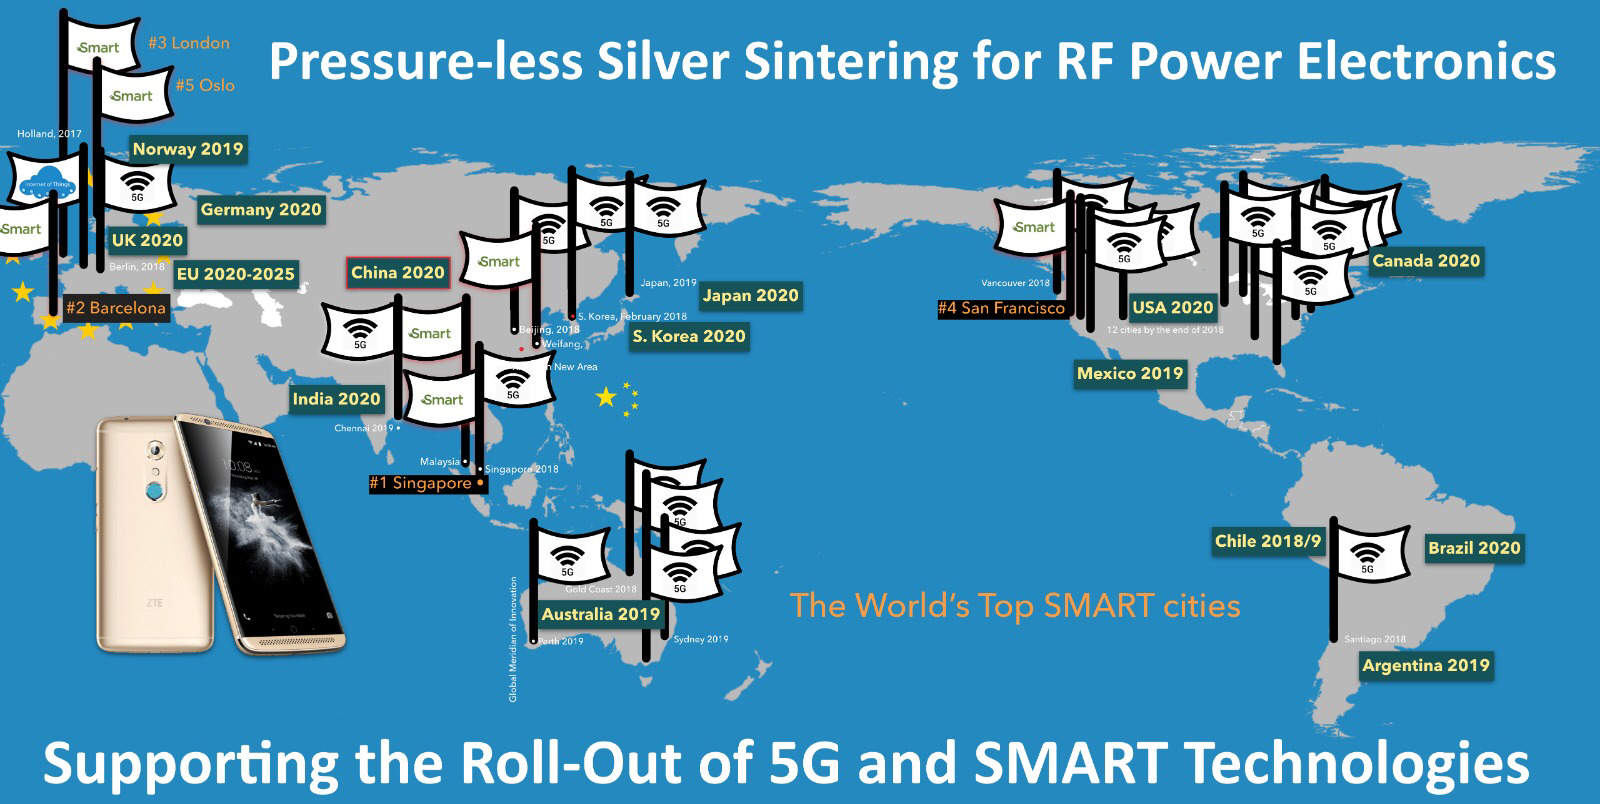 Pressure-less Silver Sintering for RF Power Electronics, Part 1 of 4